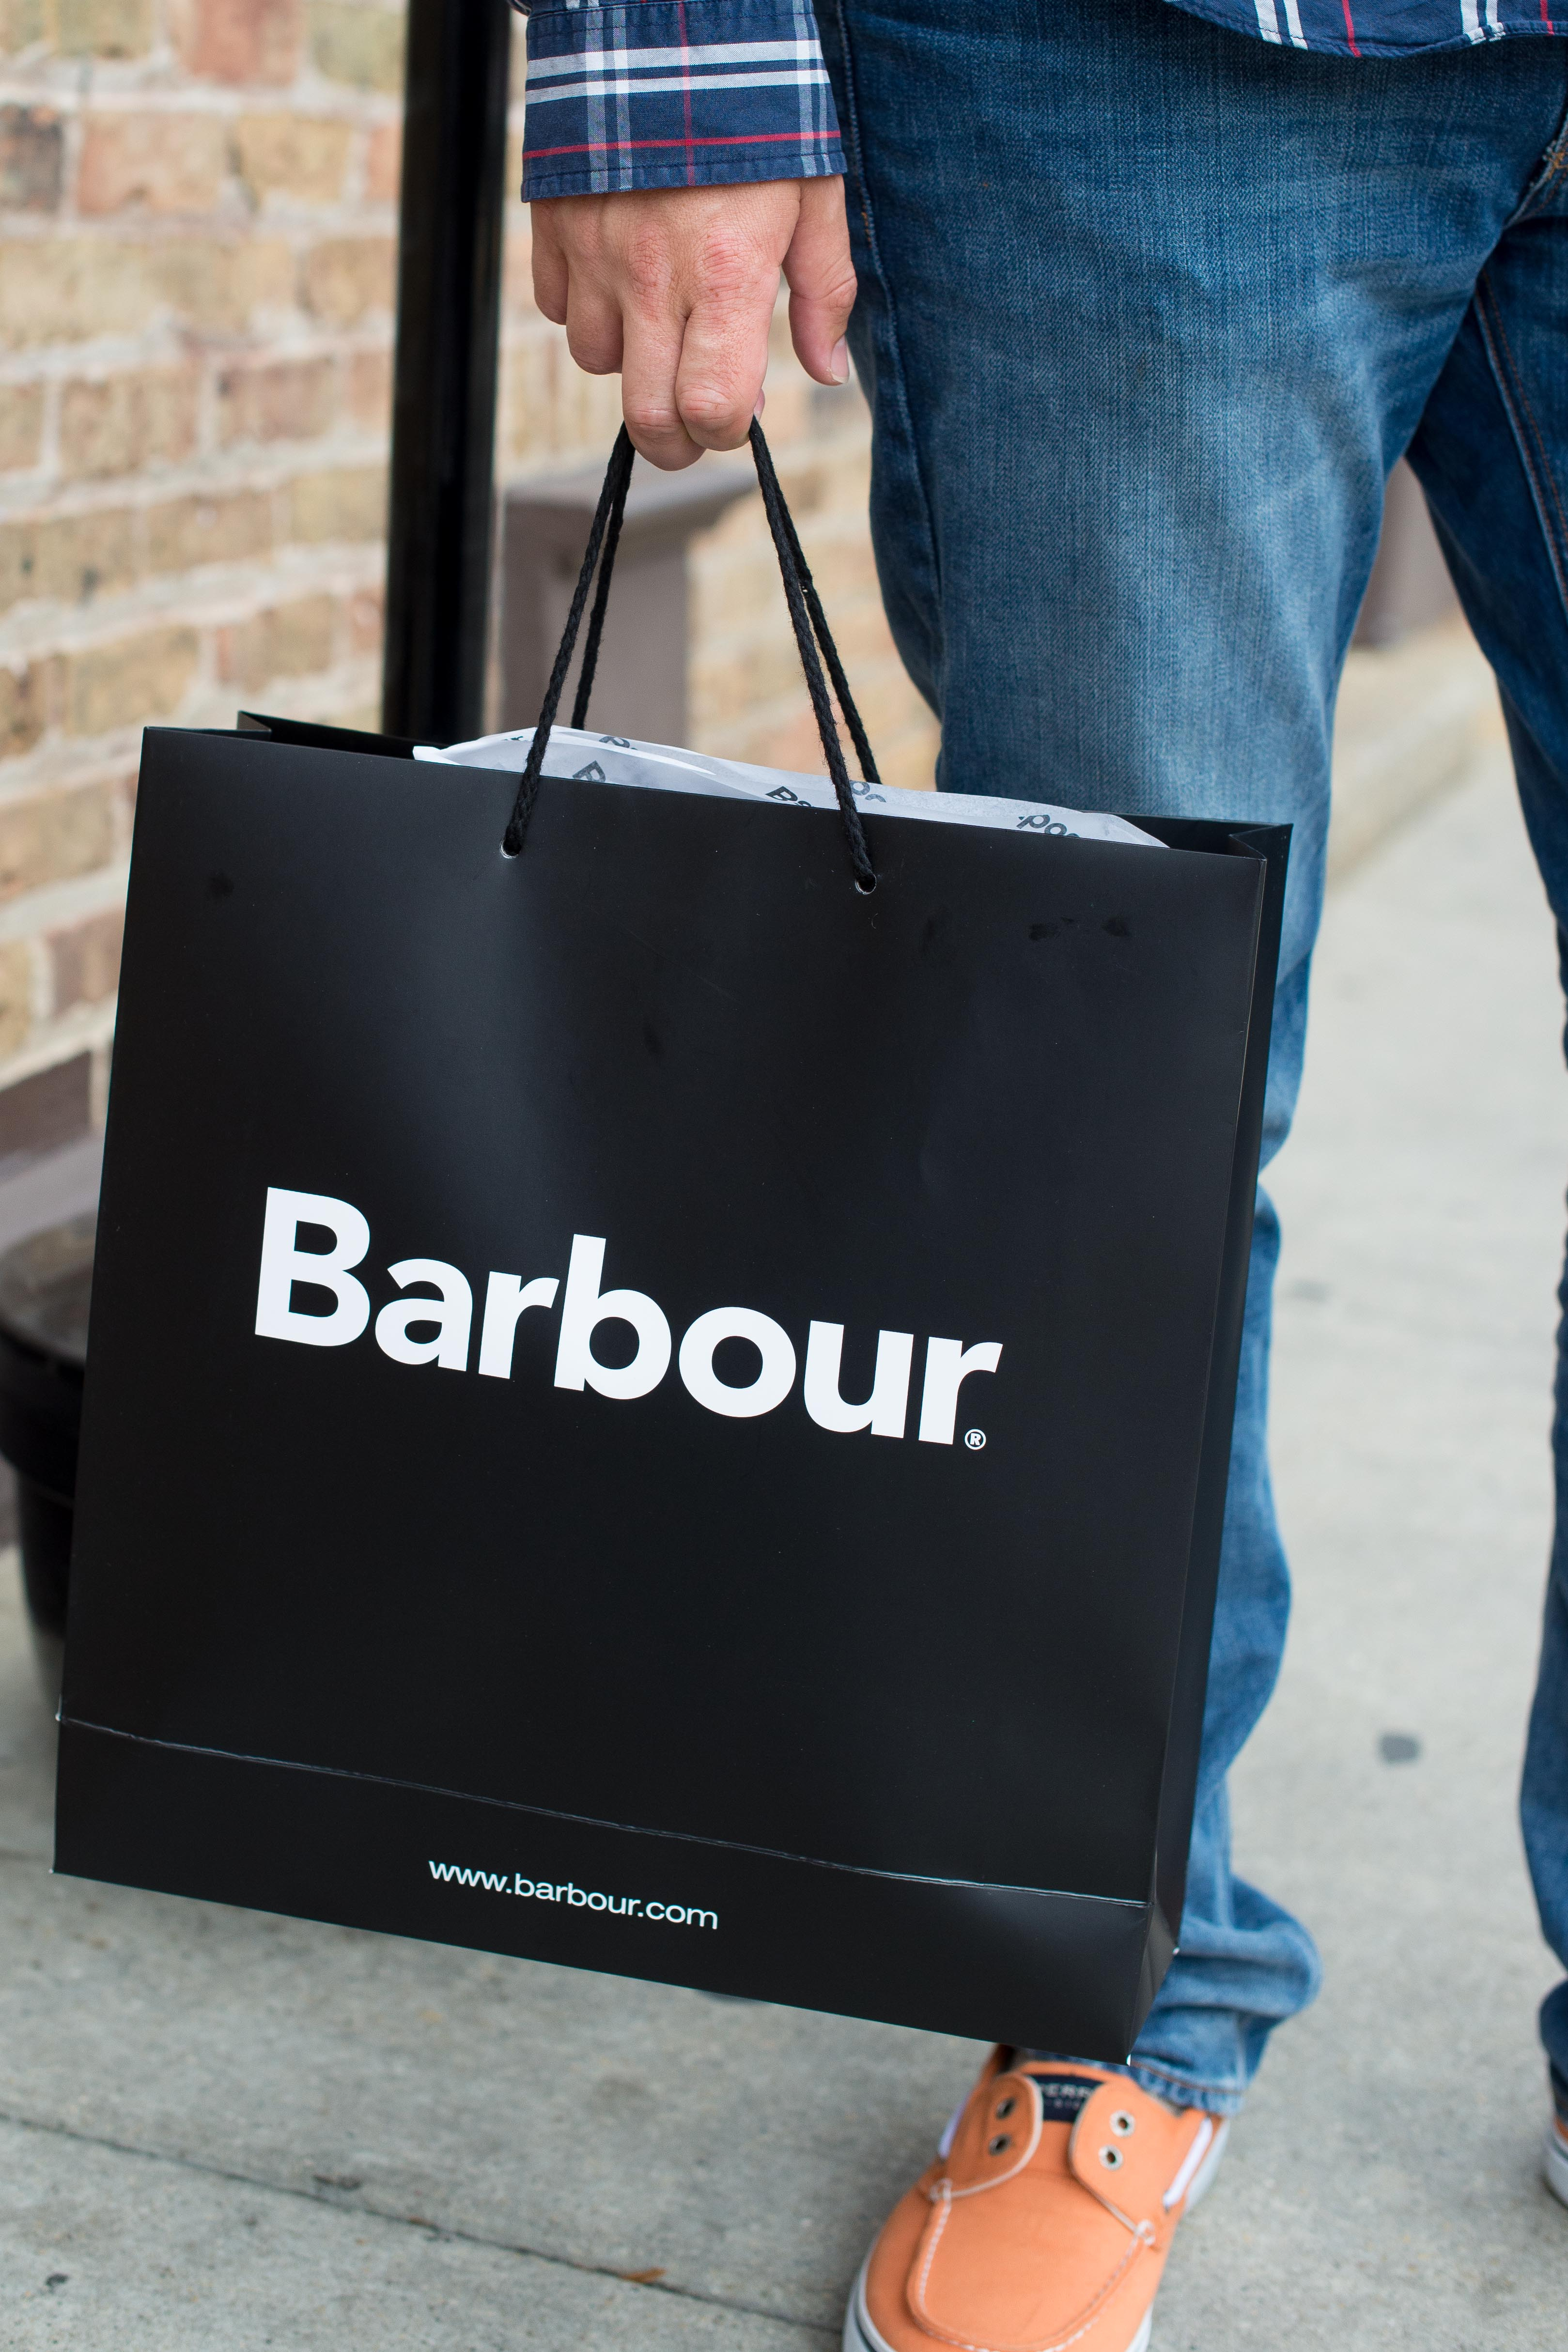 Barbour Lincoln Park Chicago-25